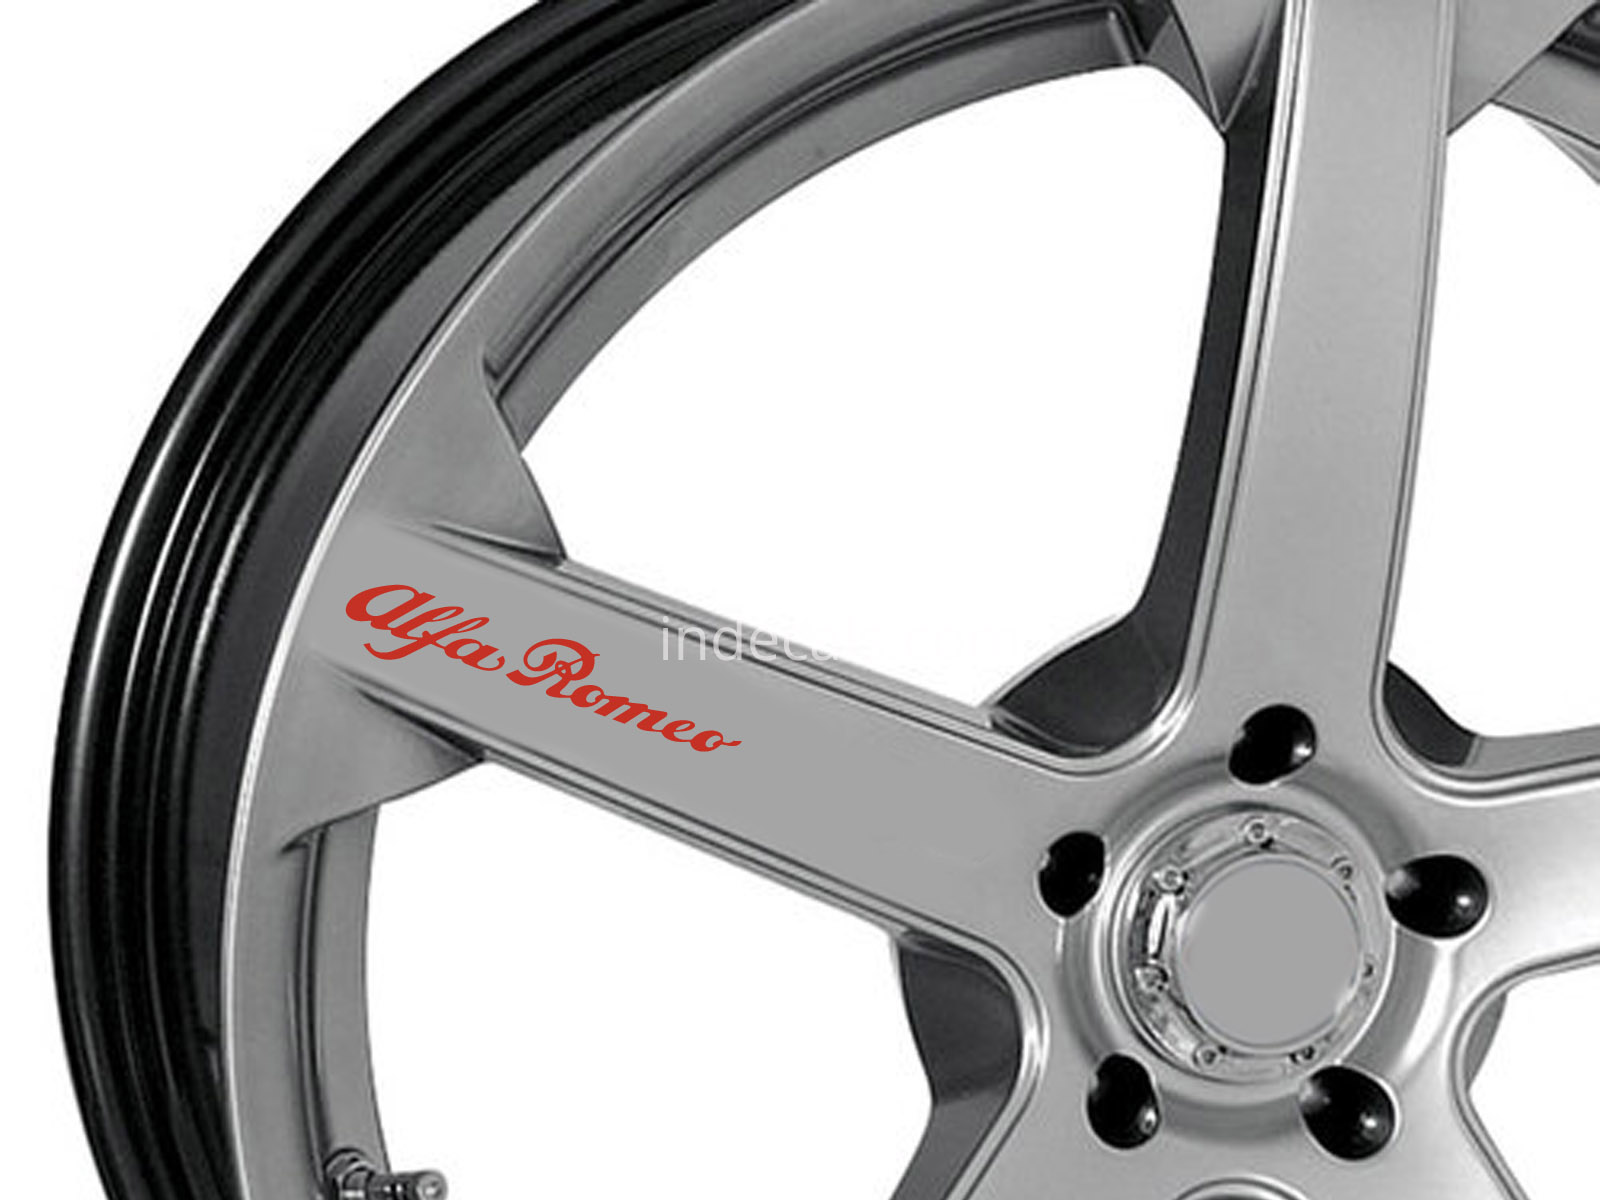 6 x Alfa Romeo Stickers for Wheels - Red